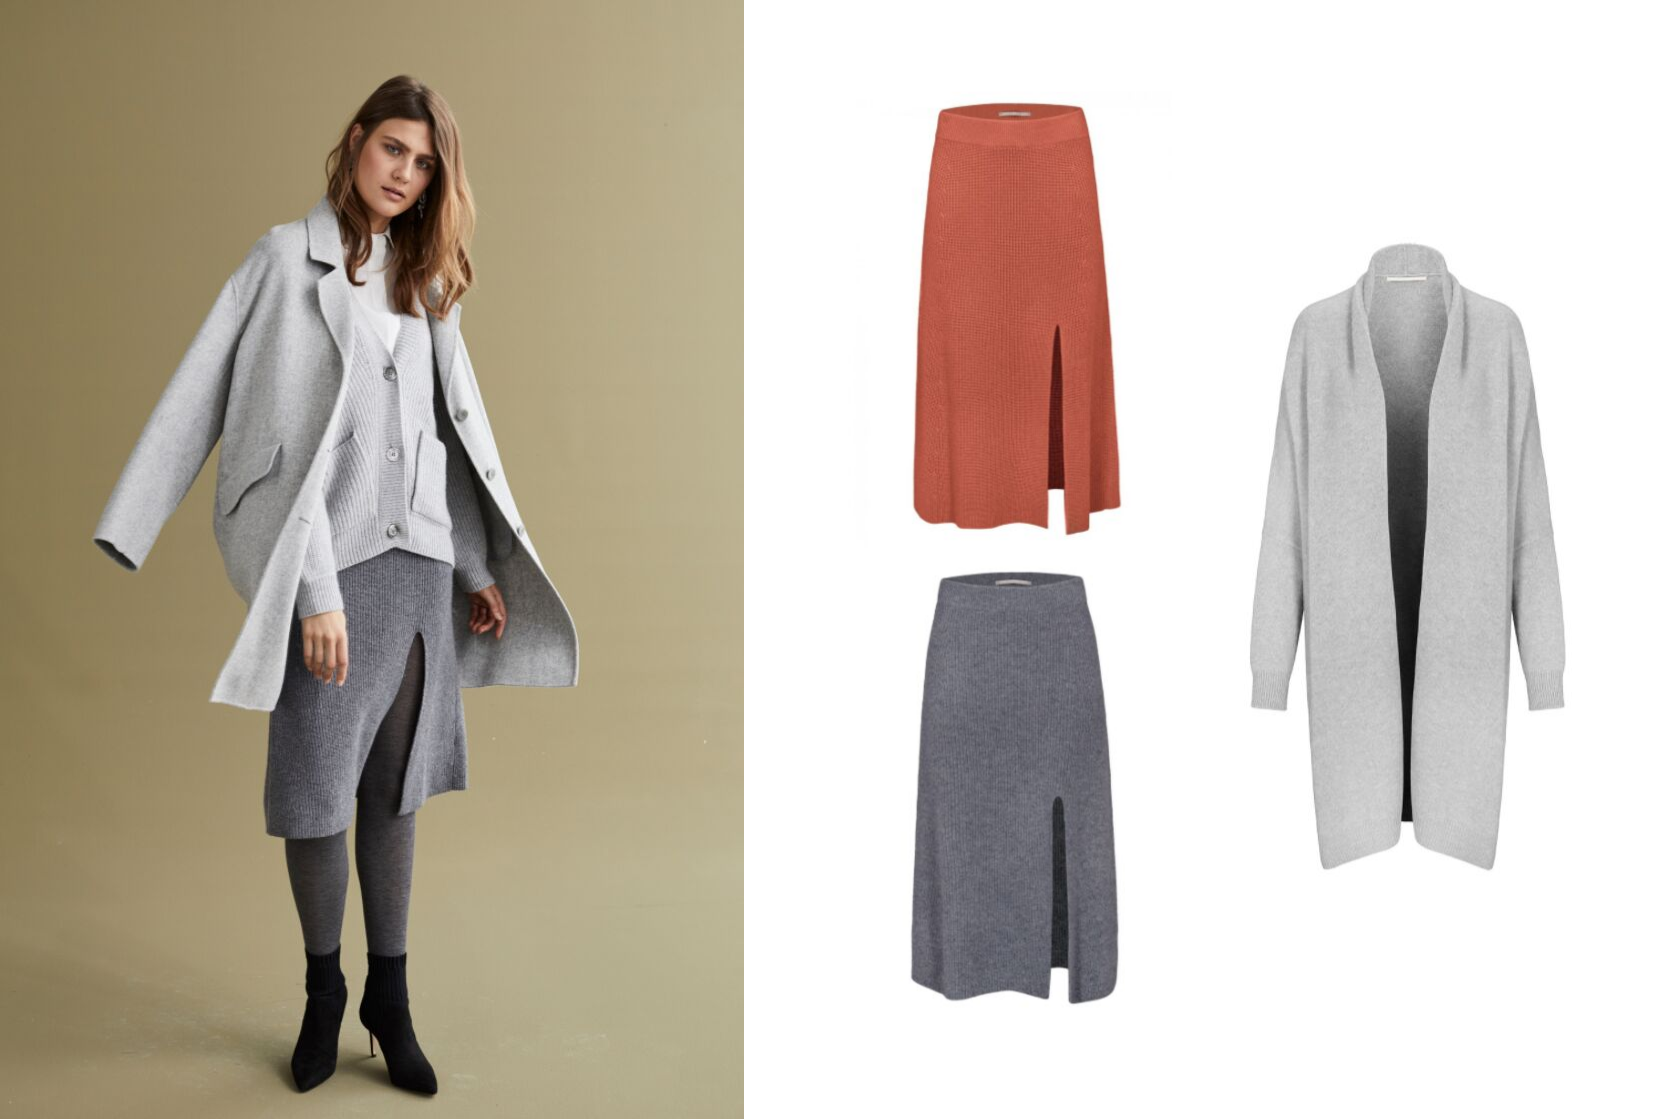 Die neuen Röcke - Cashmere is not just for jumpers!